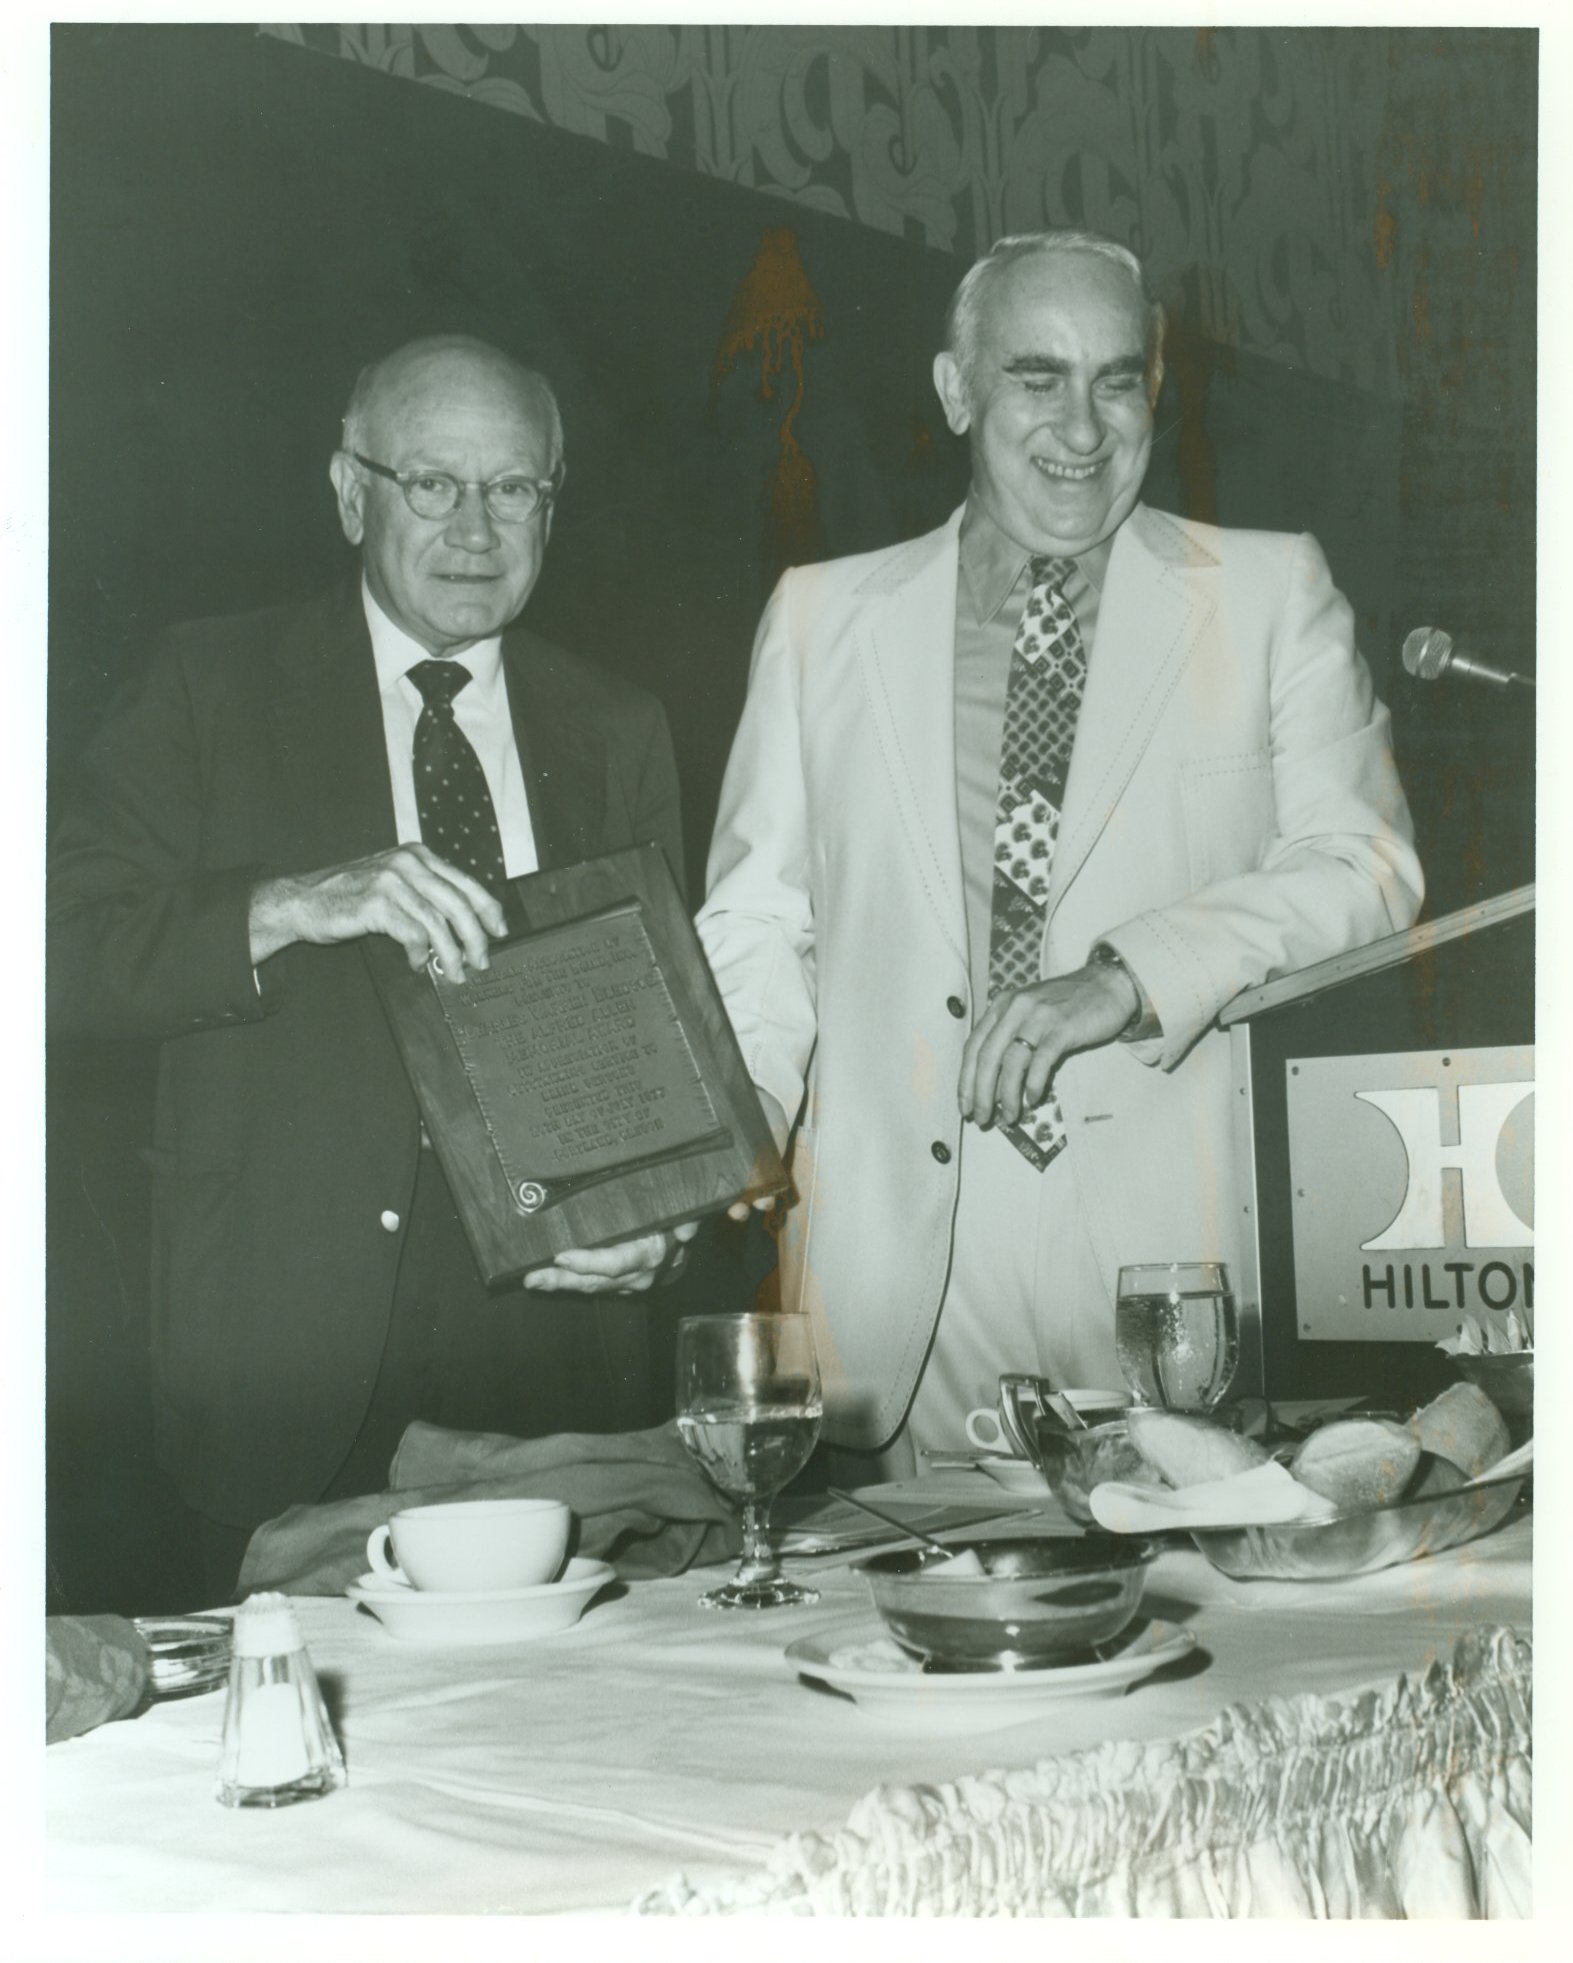 Louis Rives presents Alfred Allen Award to C. Warren Bledsoe, 1977